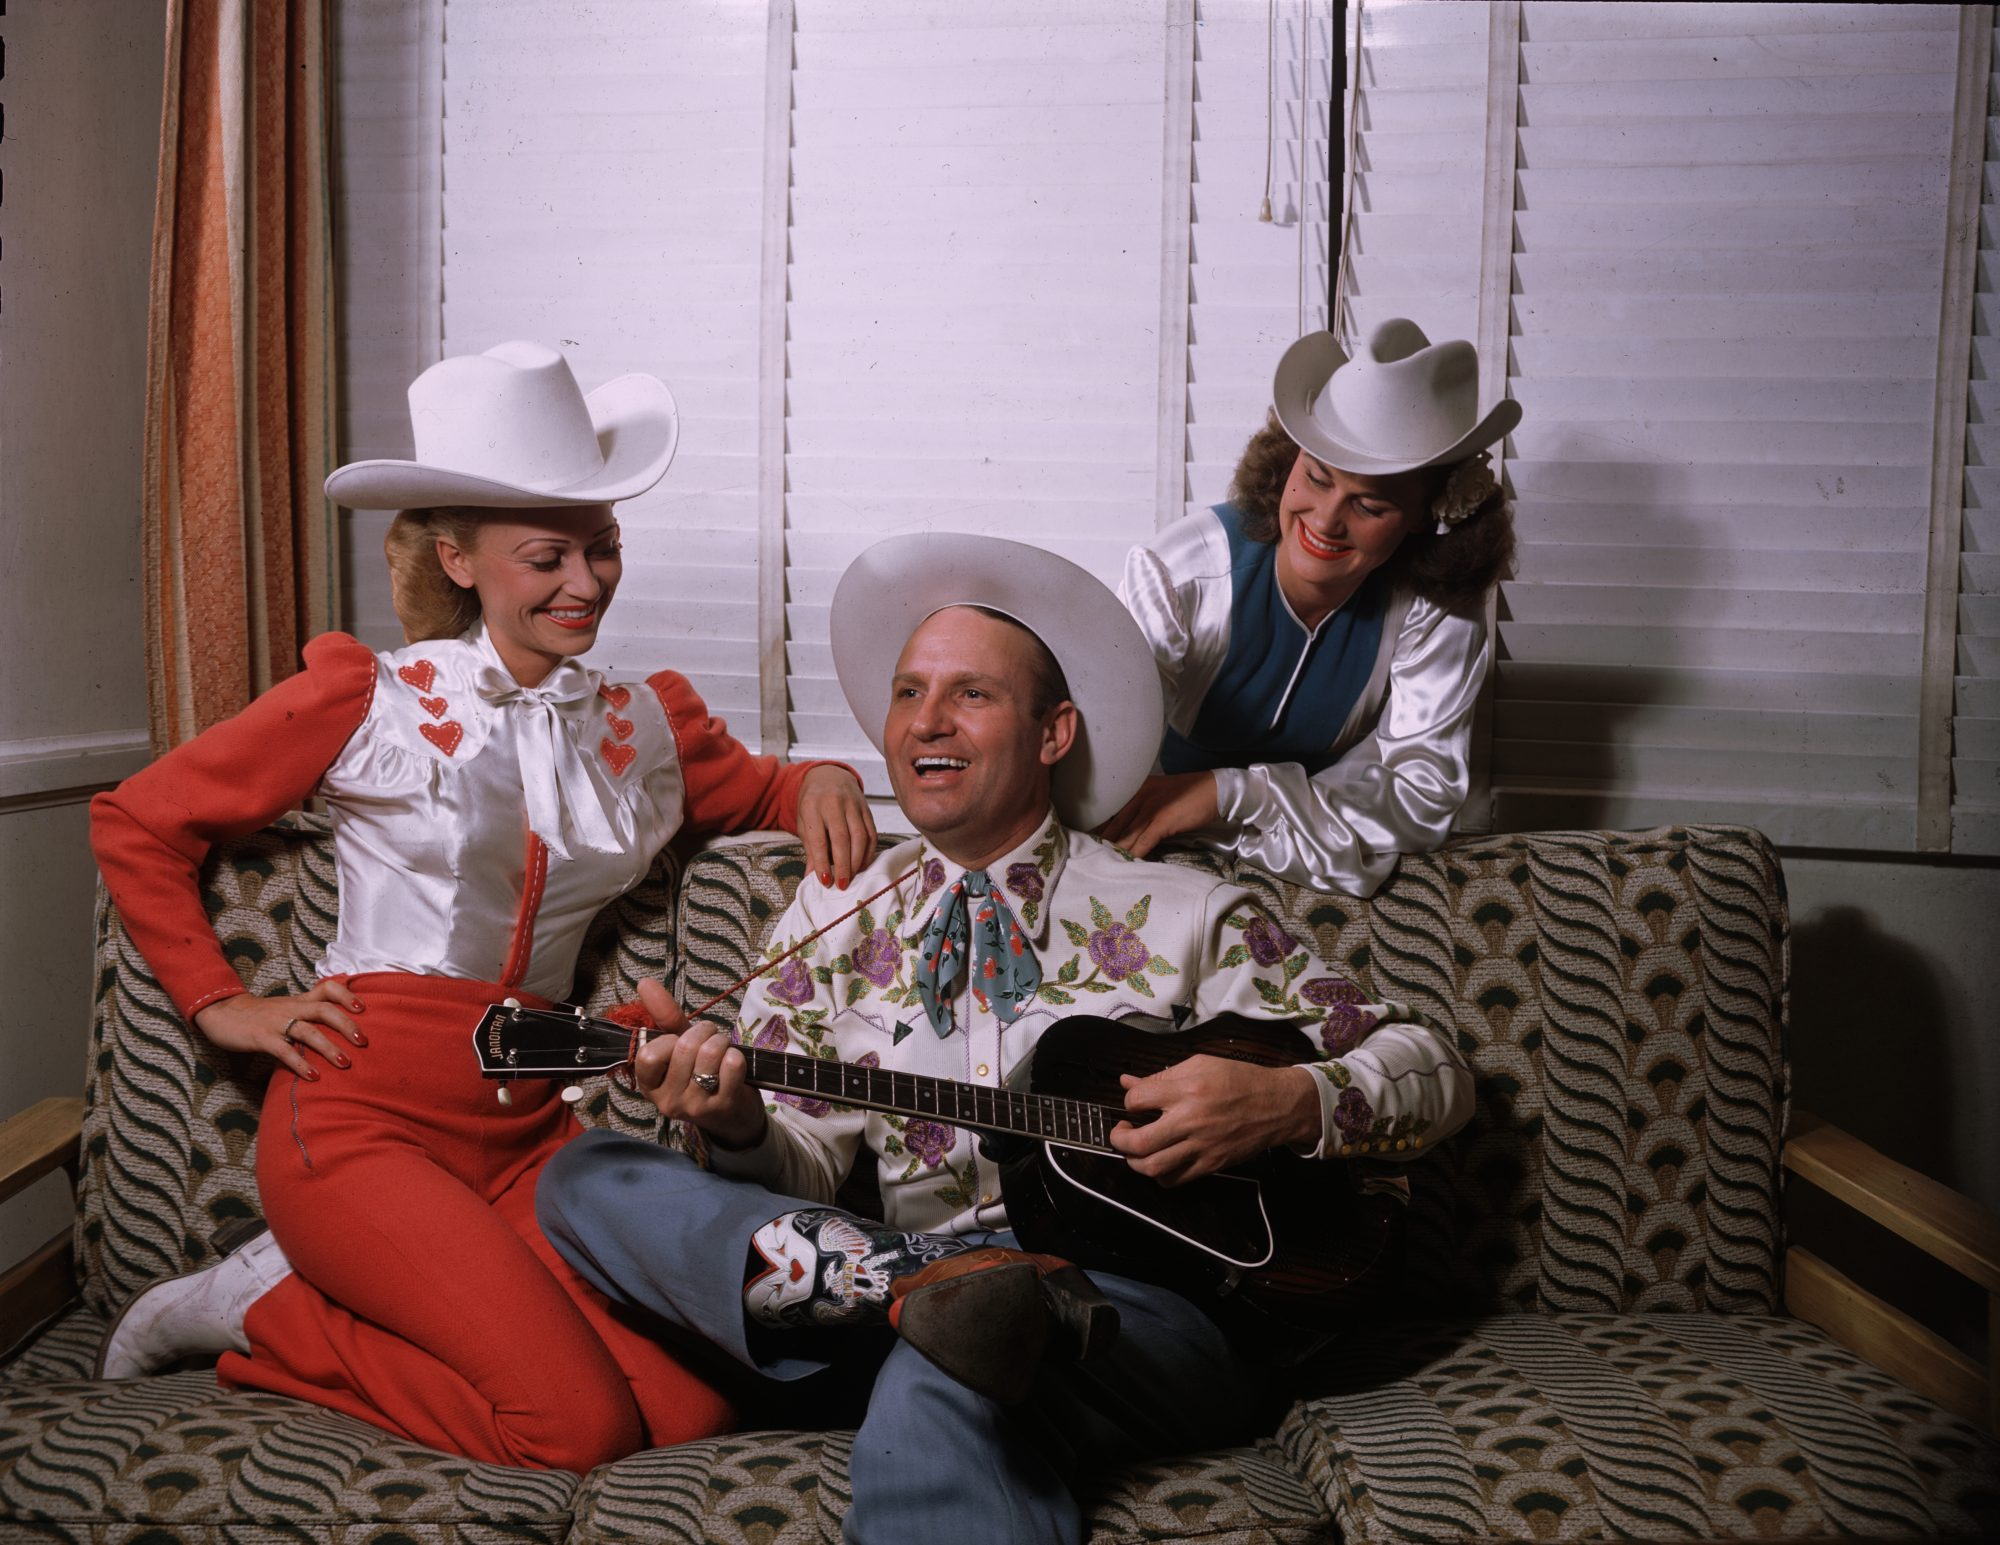 Gene Autry, Faye Blessing, and Jeanne Gatshall